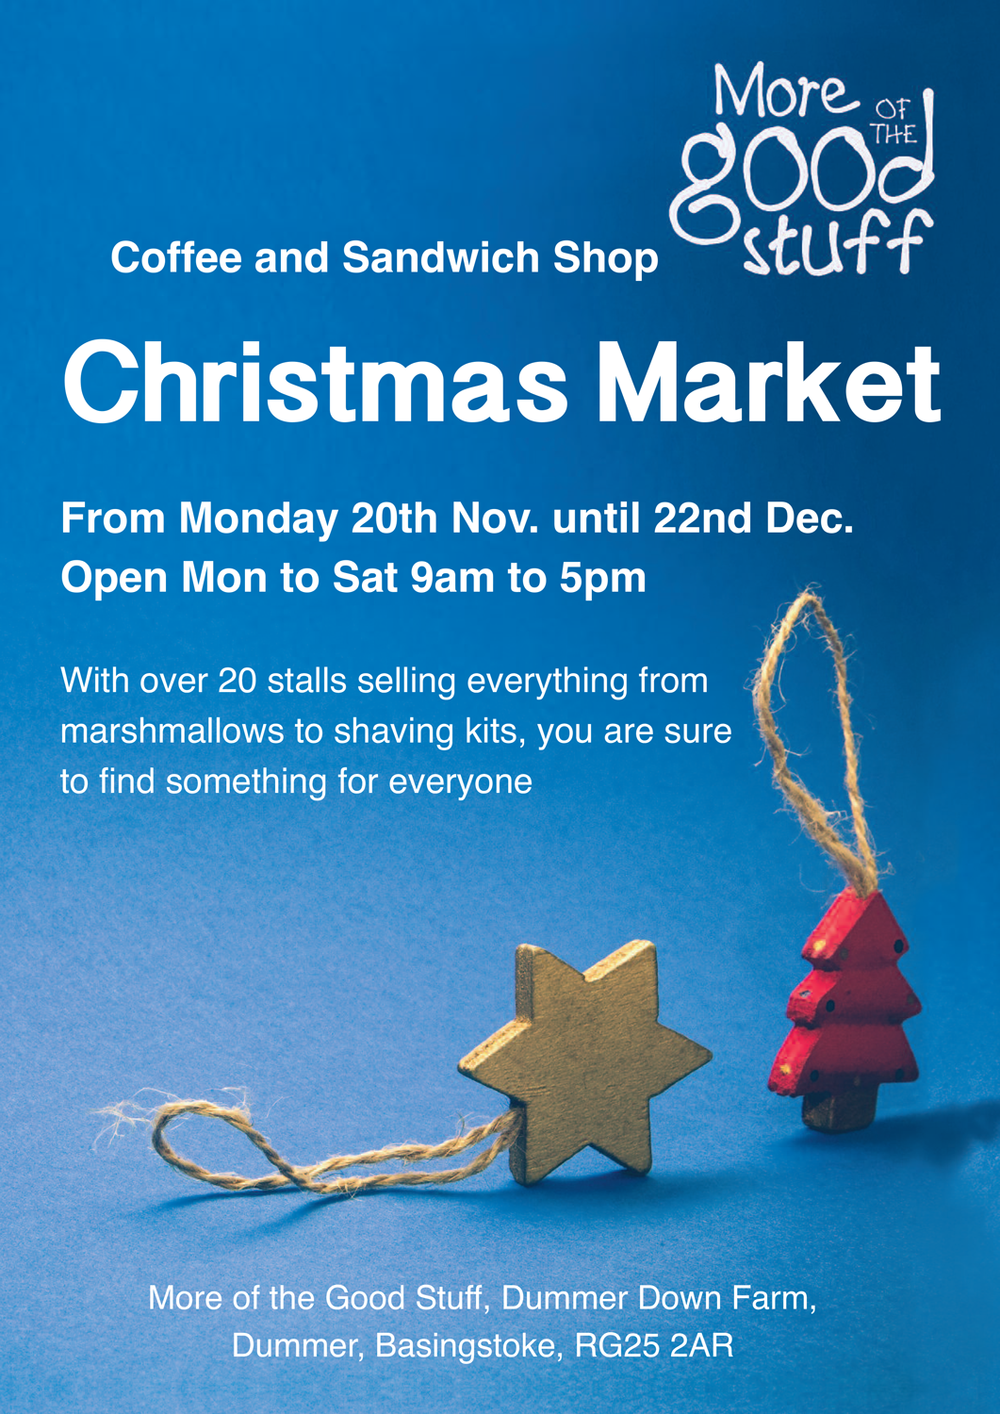 Christmas Market - We have a christmas market running from 20th November - 22nd December. Pop in and pick up some prefect pressies!